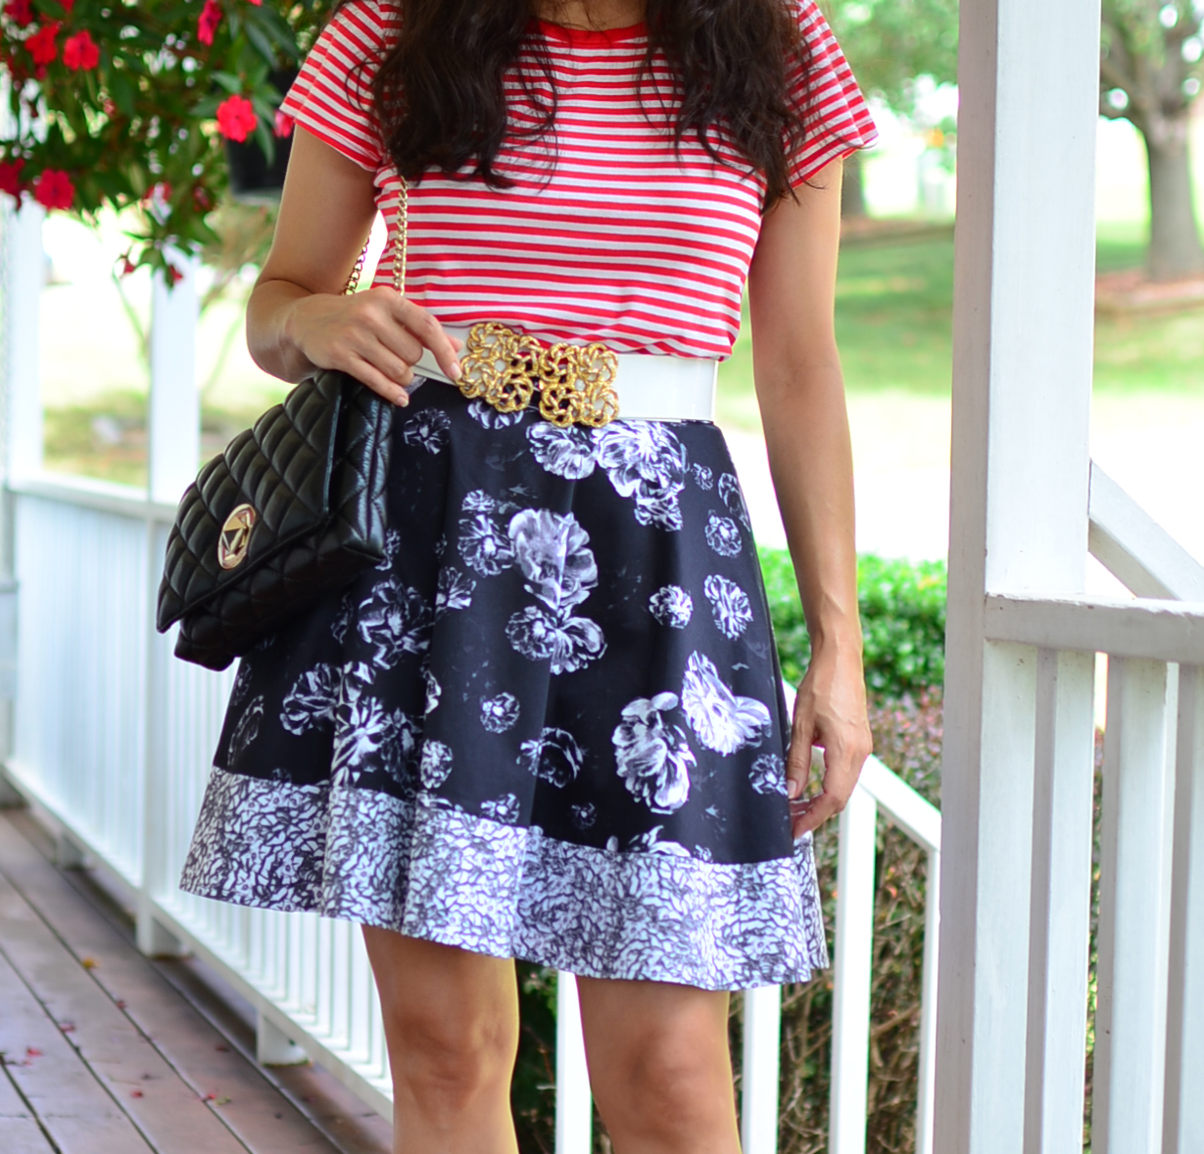 How to wear florals with stripes